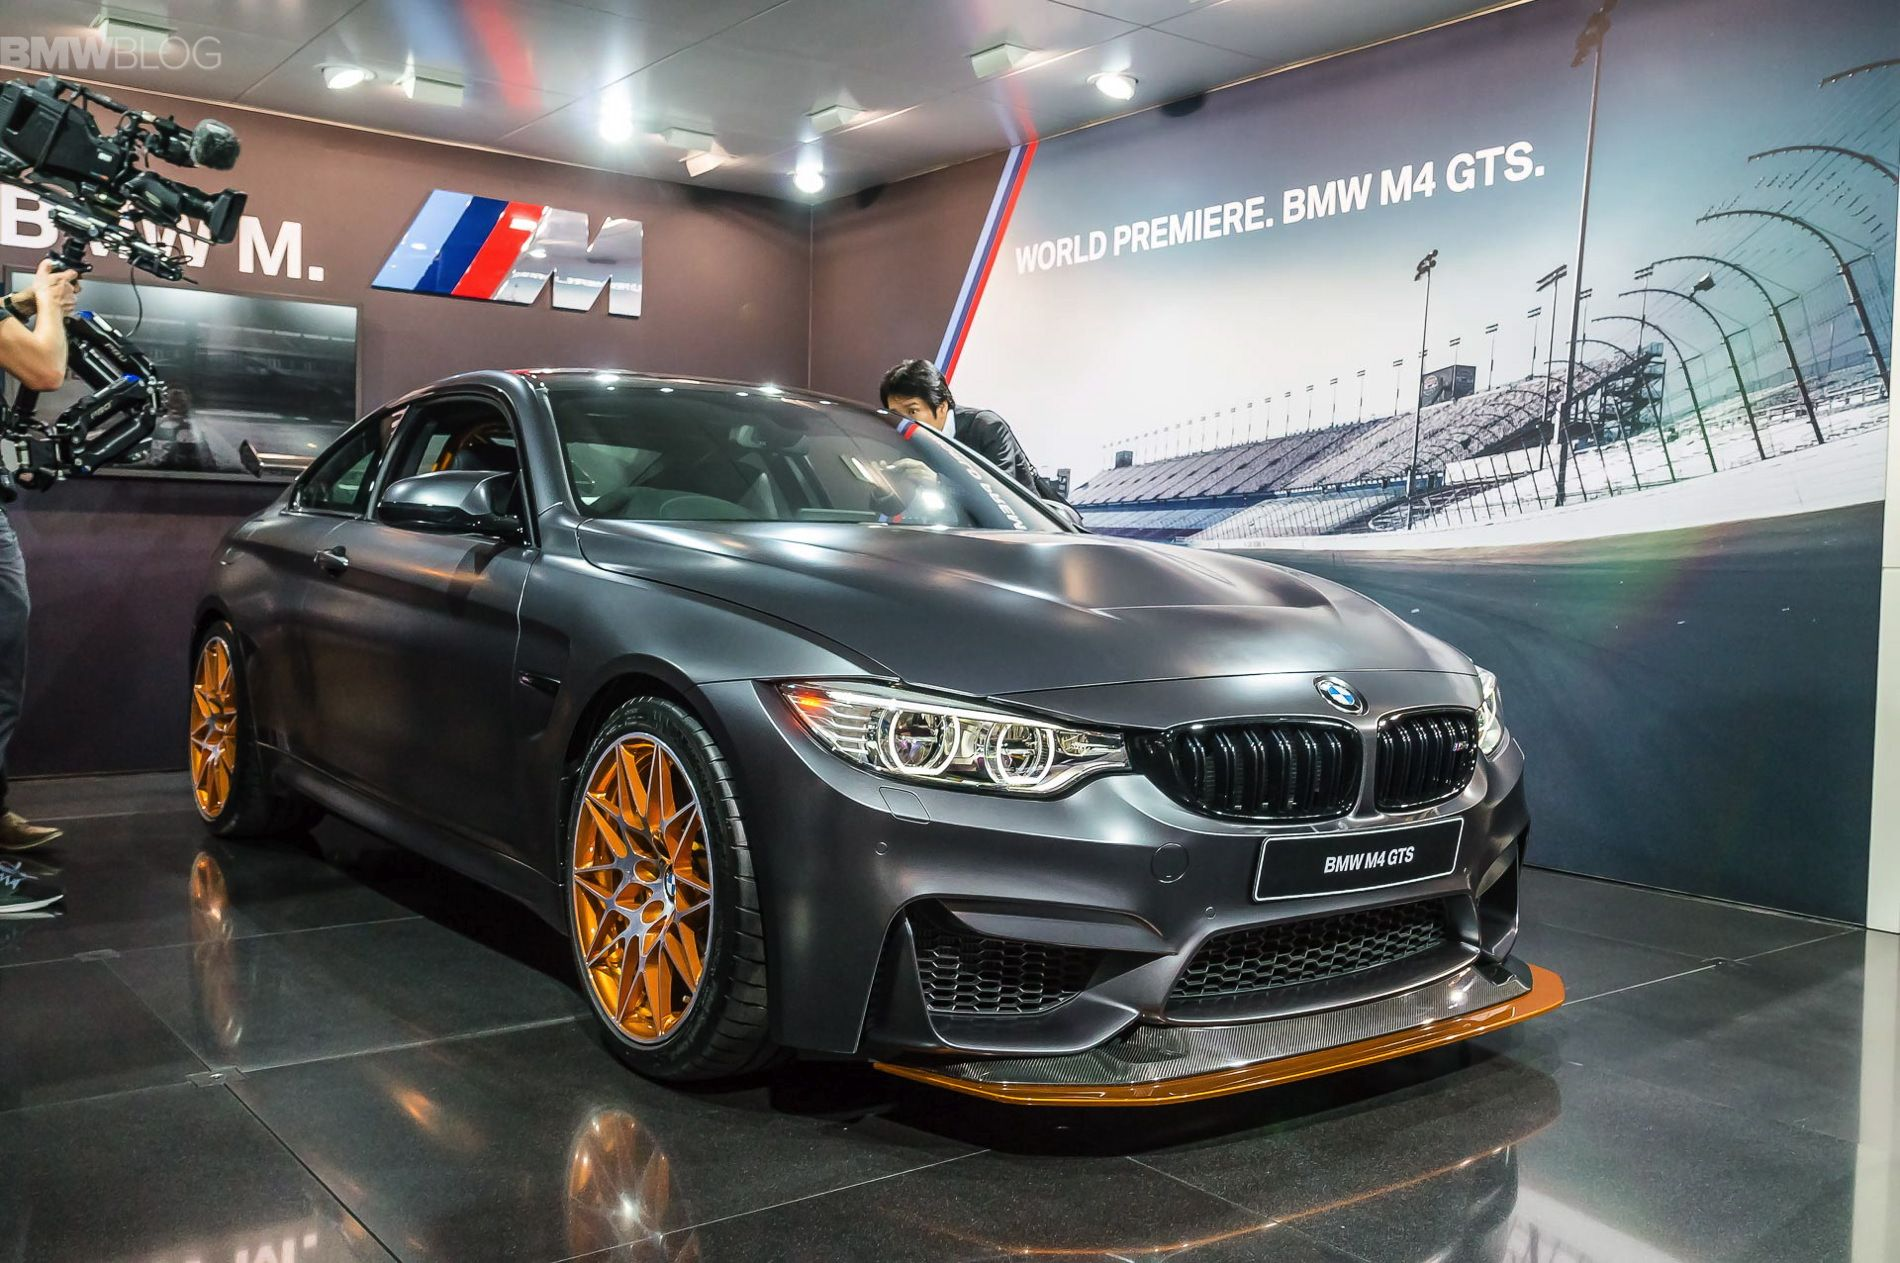 BMW Builds Only Five M4 GTS Models Per Day   Http://www.bmwblog.com/2015 /12/28/bmw Builds Only Five M4 Gts Models Per Day/